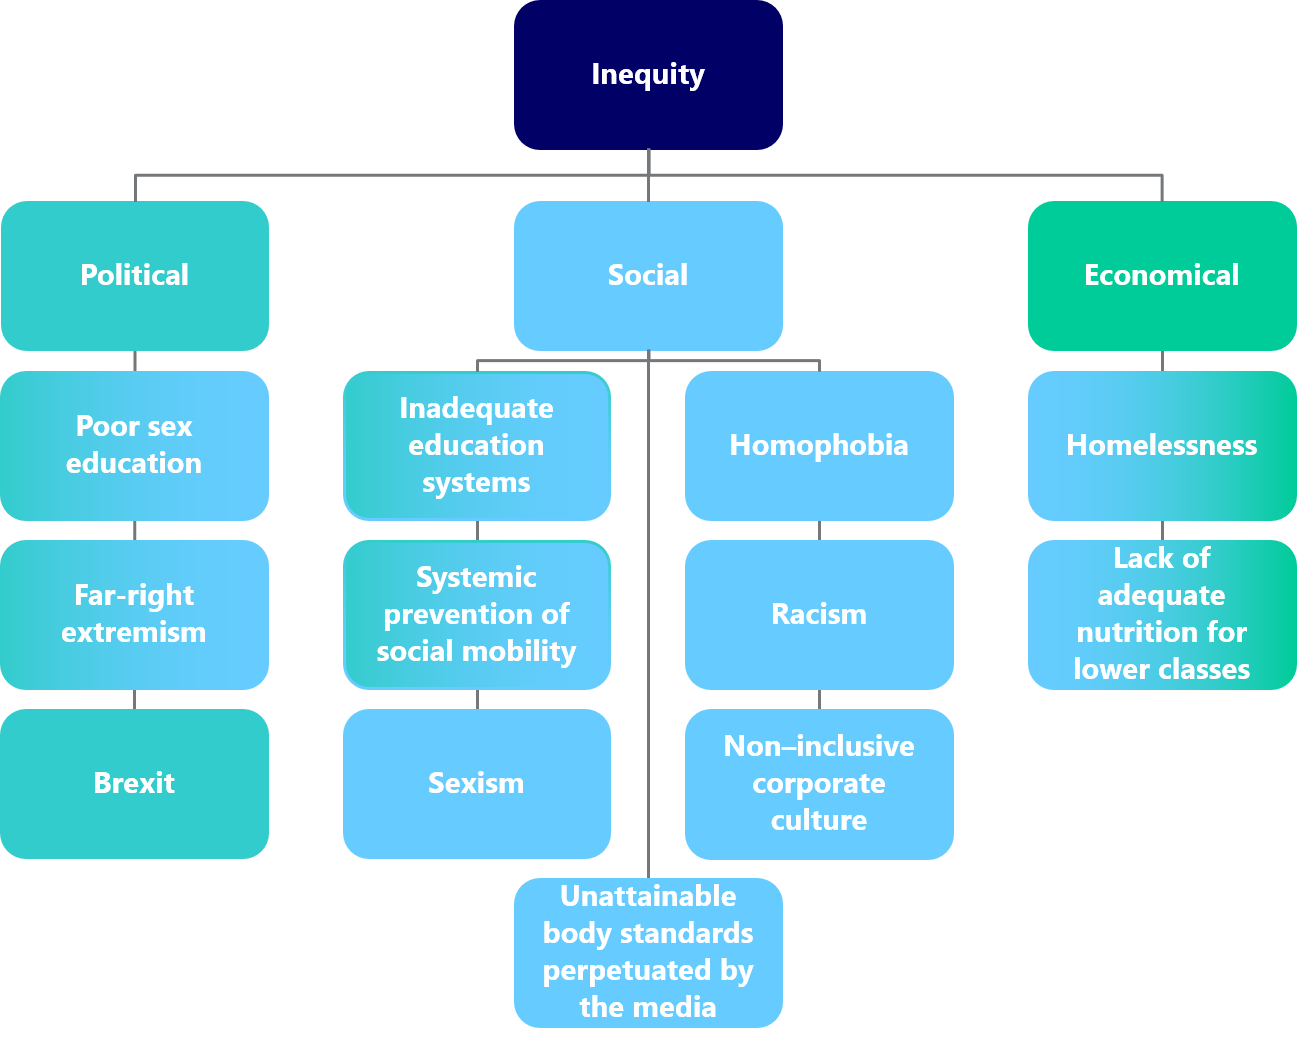 A diagram showing all the issues I want to tackle as I attempt to find my purpose. The diagram starts with inequity, before splitting issues out under the buckets: politics, society, and economy.